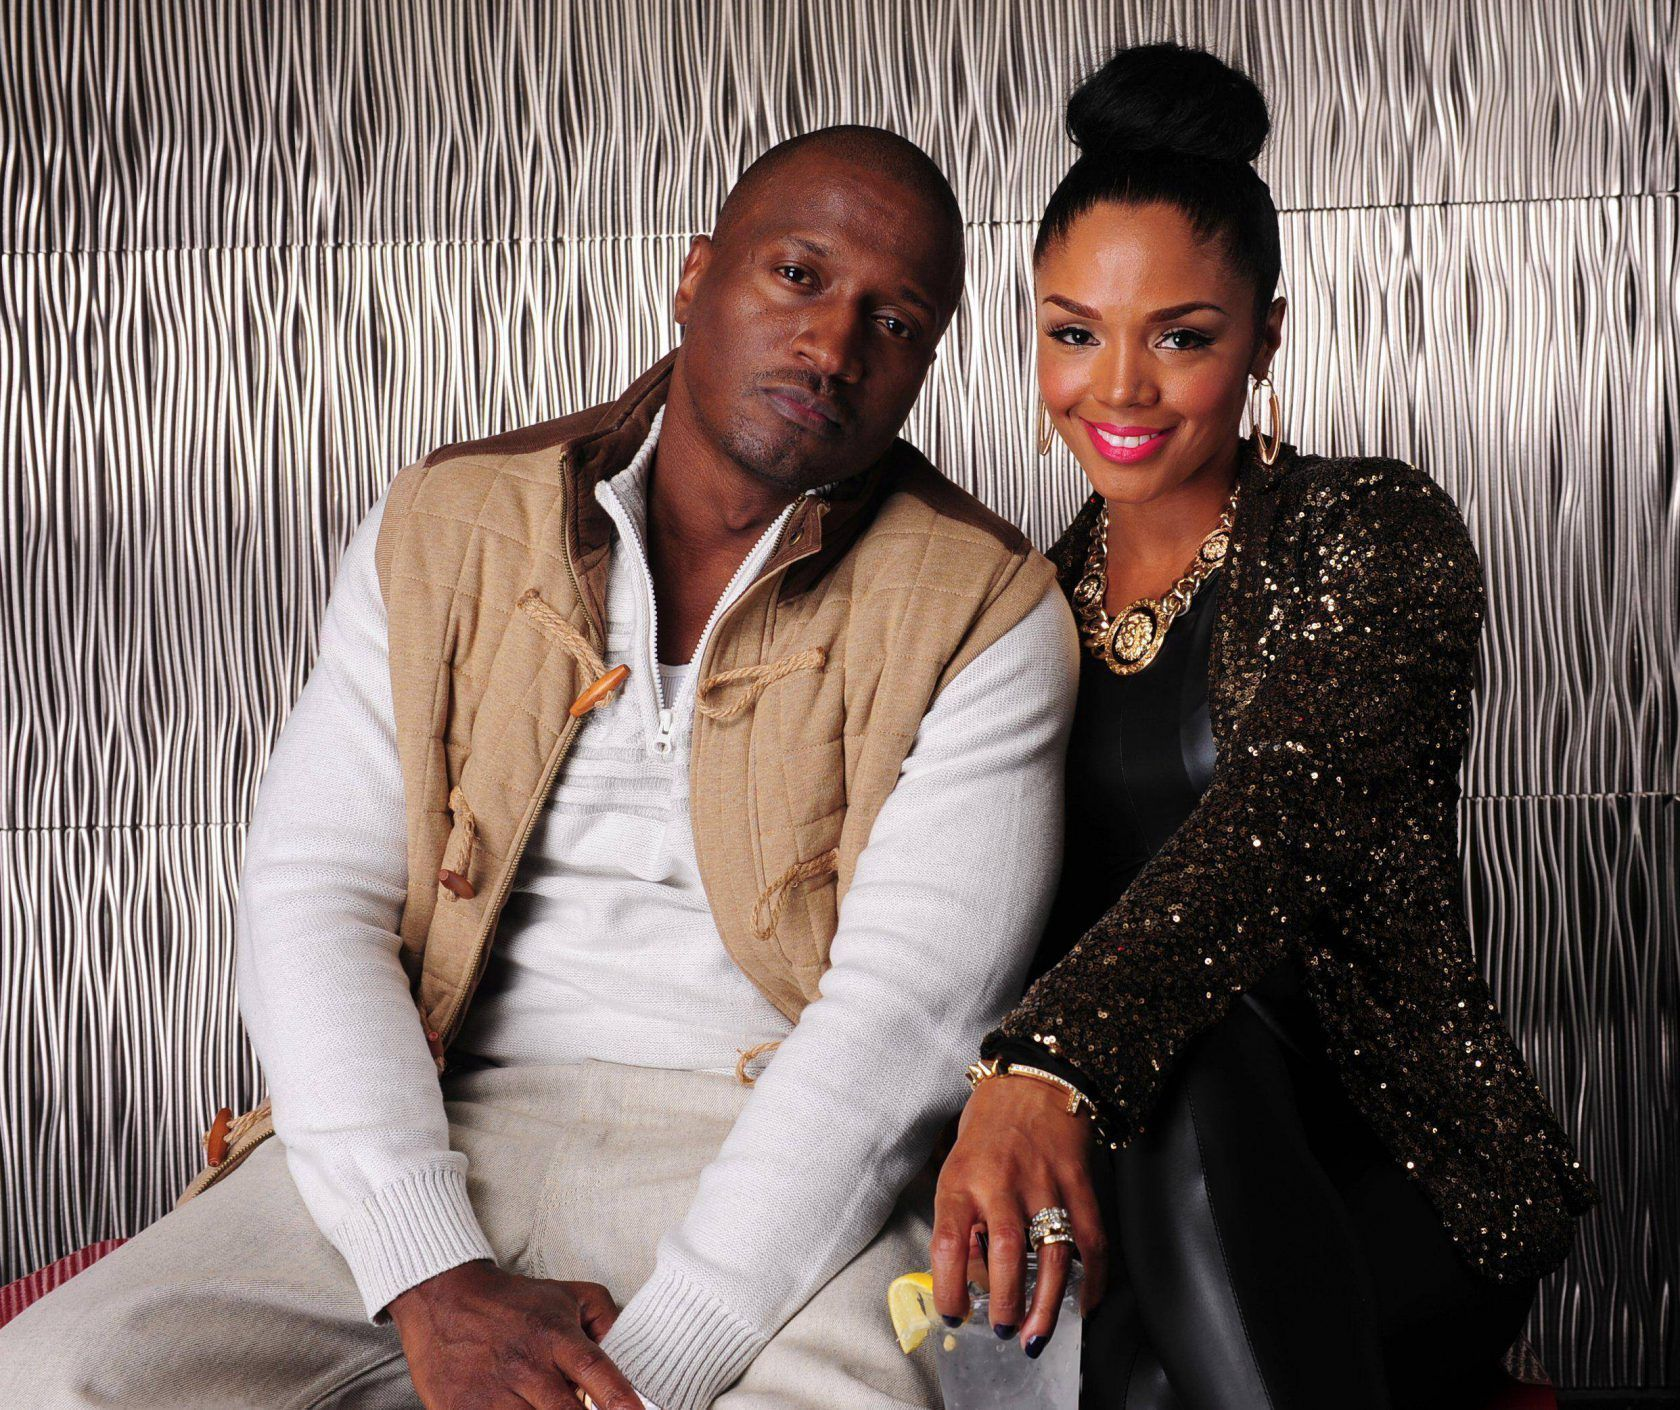 Rasheeda Frost's Fans Love Her Latest Video In Which Kirk Frost Advertises Pressed Boutique – People Want A Lavish Vow Renewal!